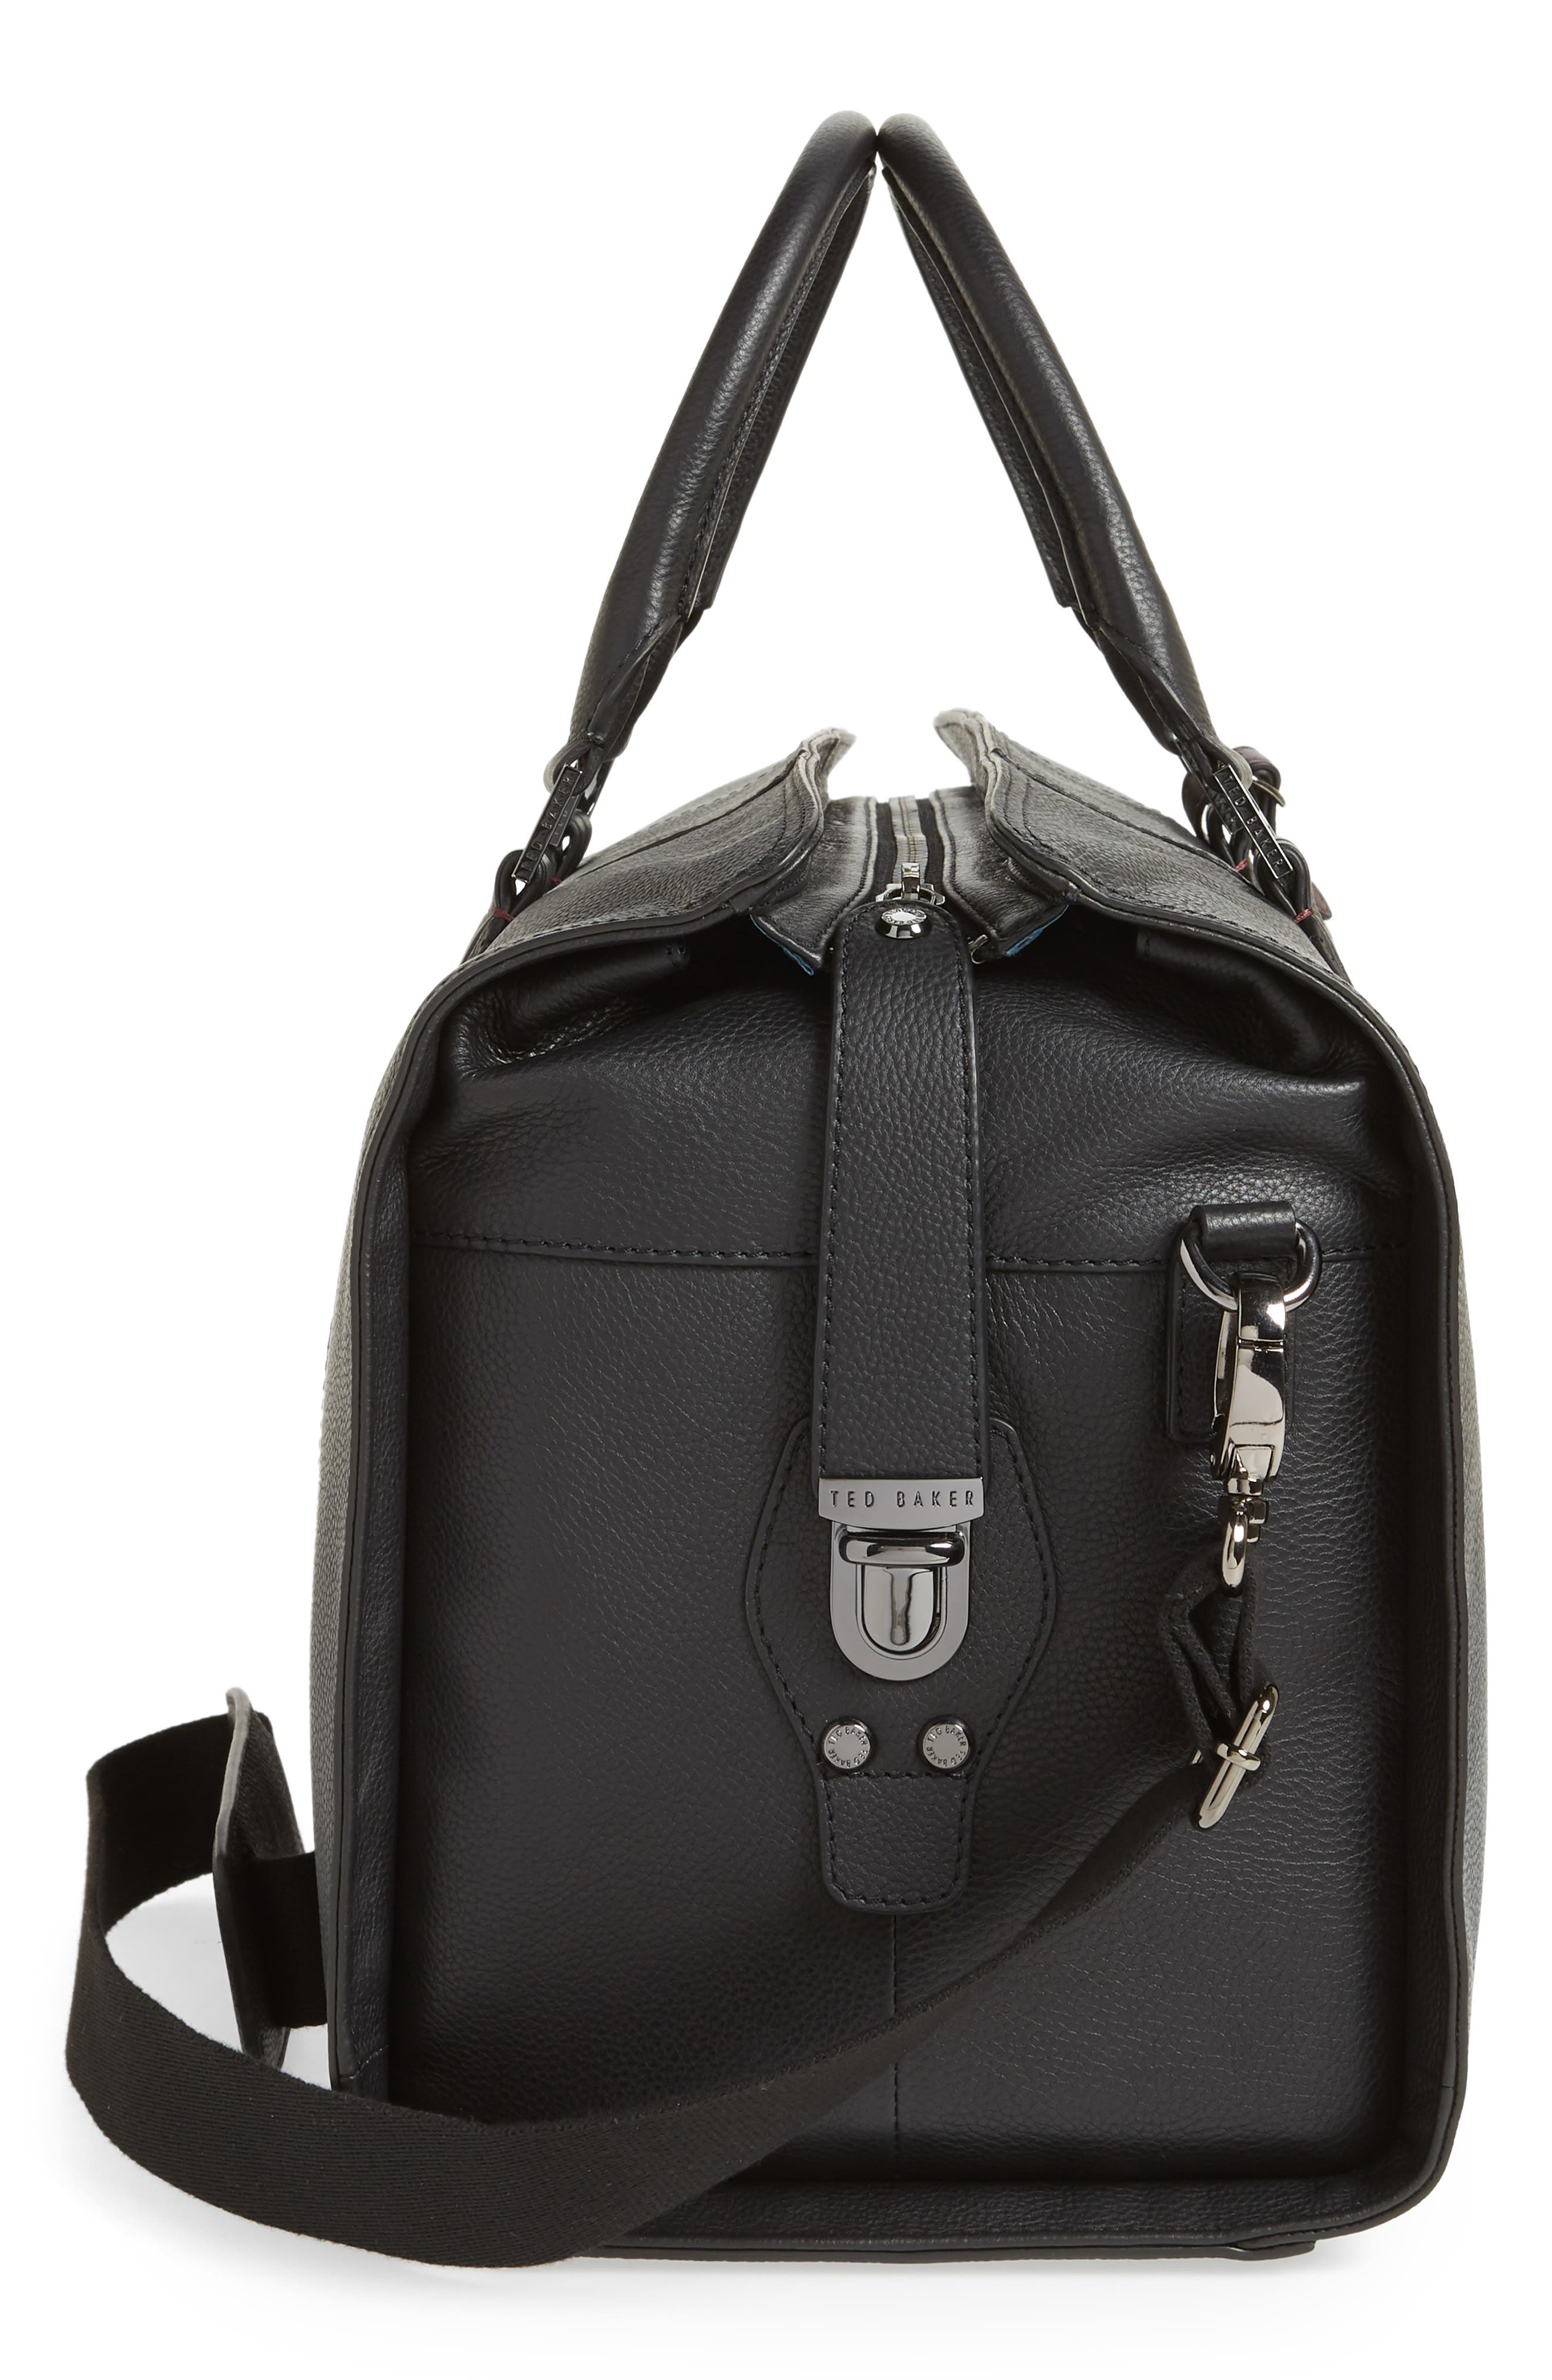 TED BAKER LONDON,                             Geeves Stripe Leather Duffel Bag,                             Alternate thumbnail 5, color,                             001